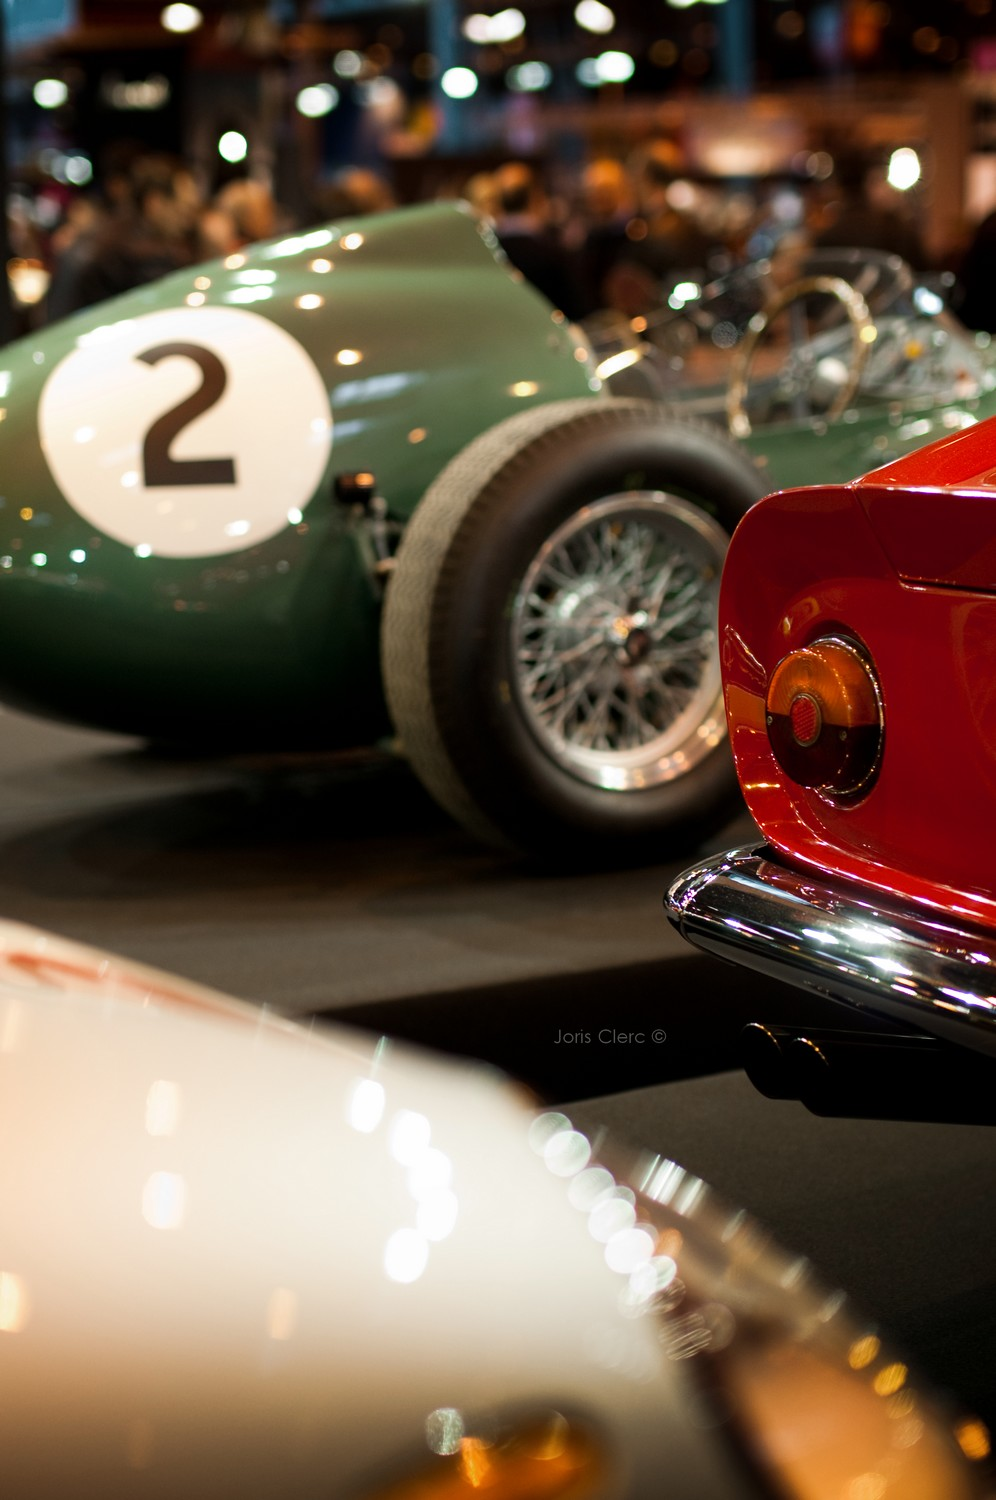 Rétromobile 2014 Aston Martin DBR4/4 Grand Prix